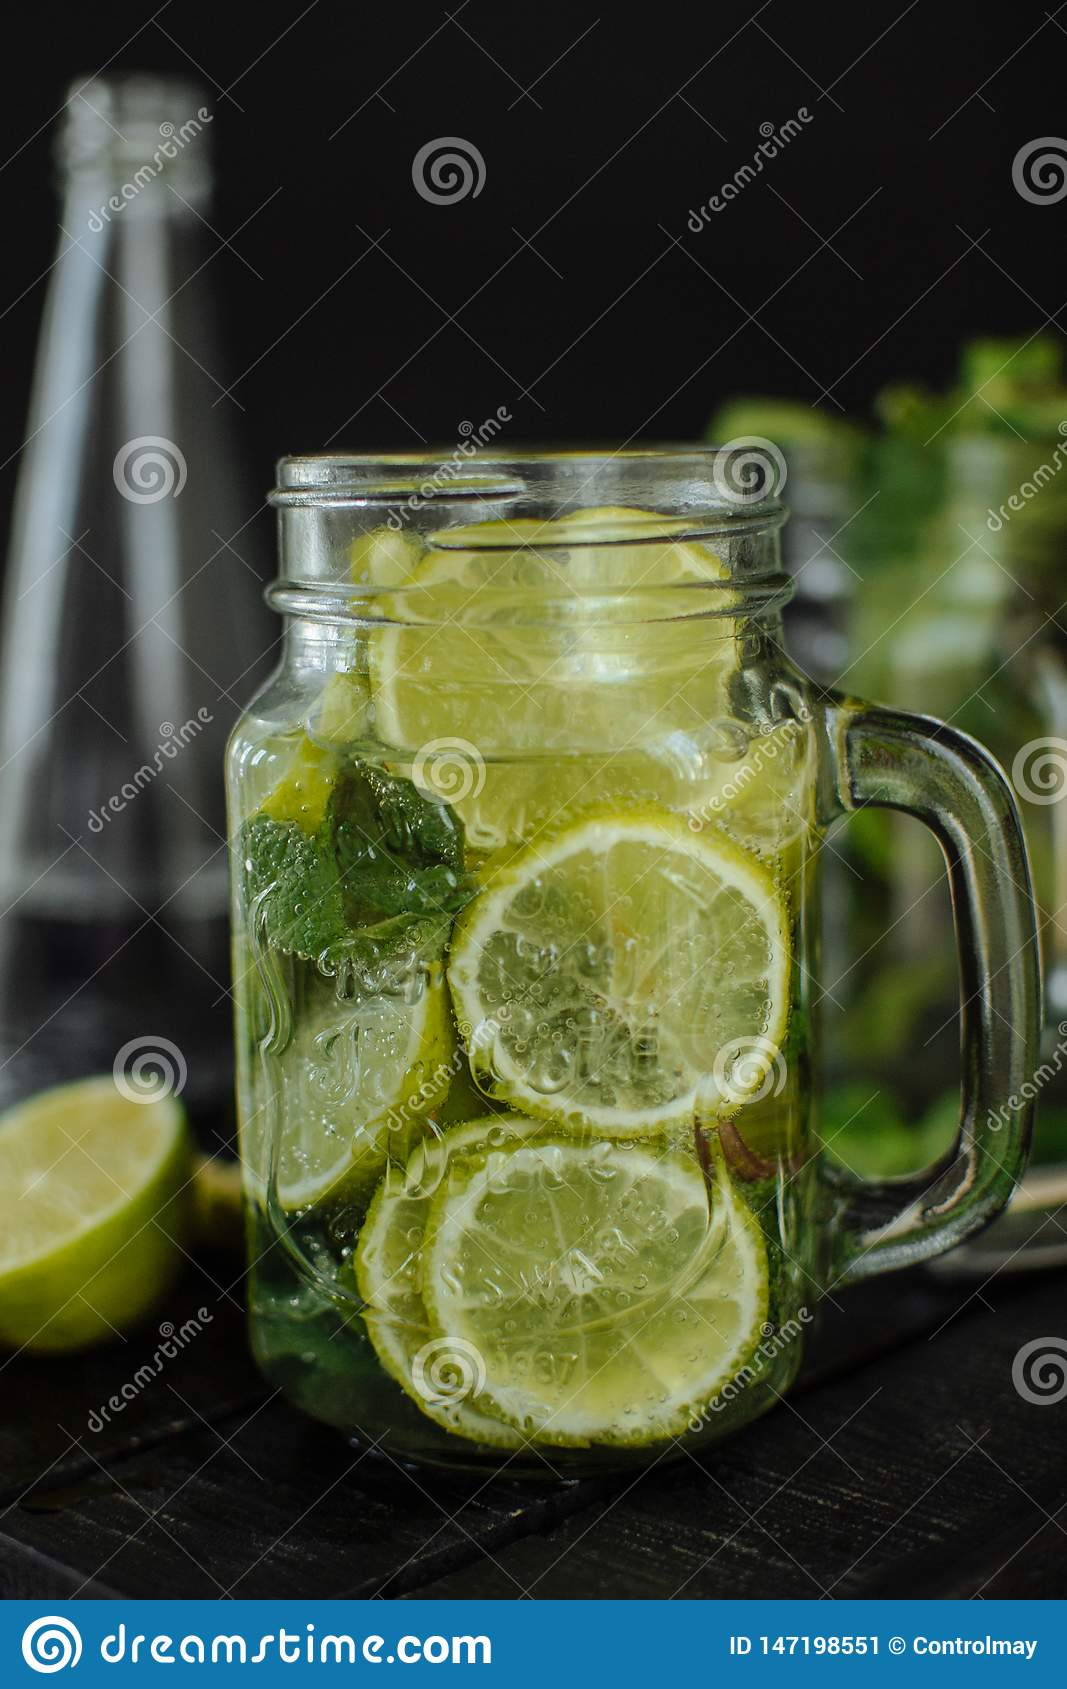 A glass of lemonade with sliced lime and lemon in a mug on a black background.